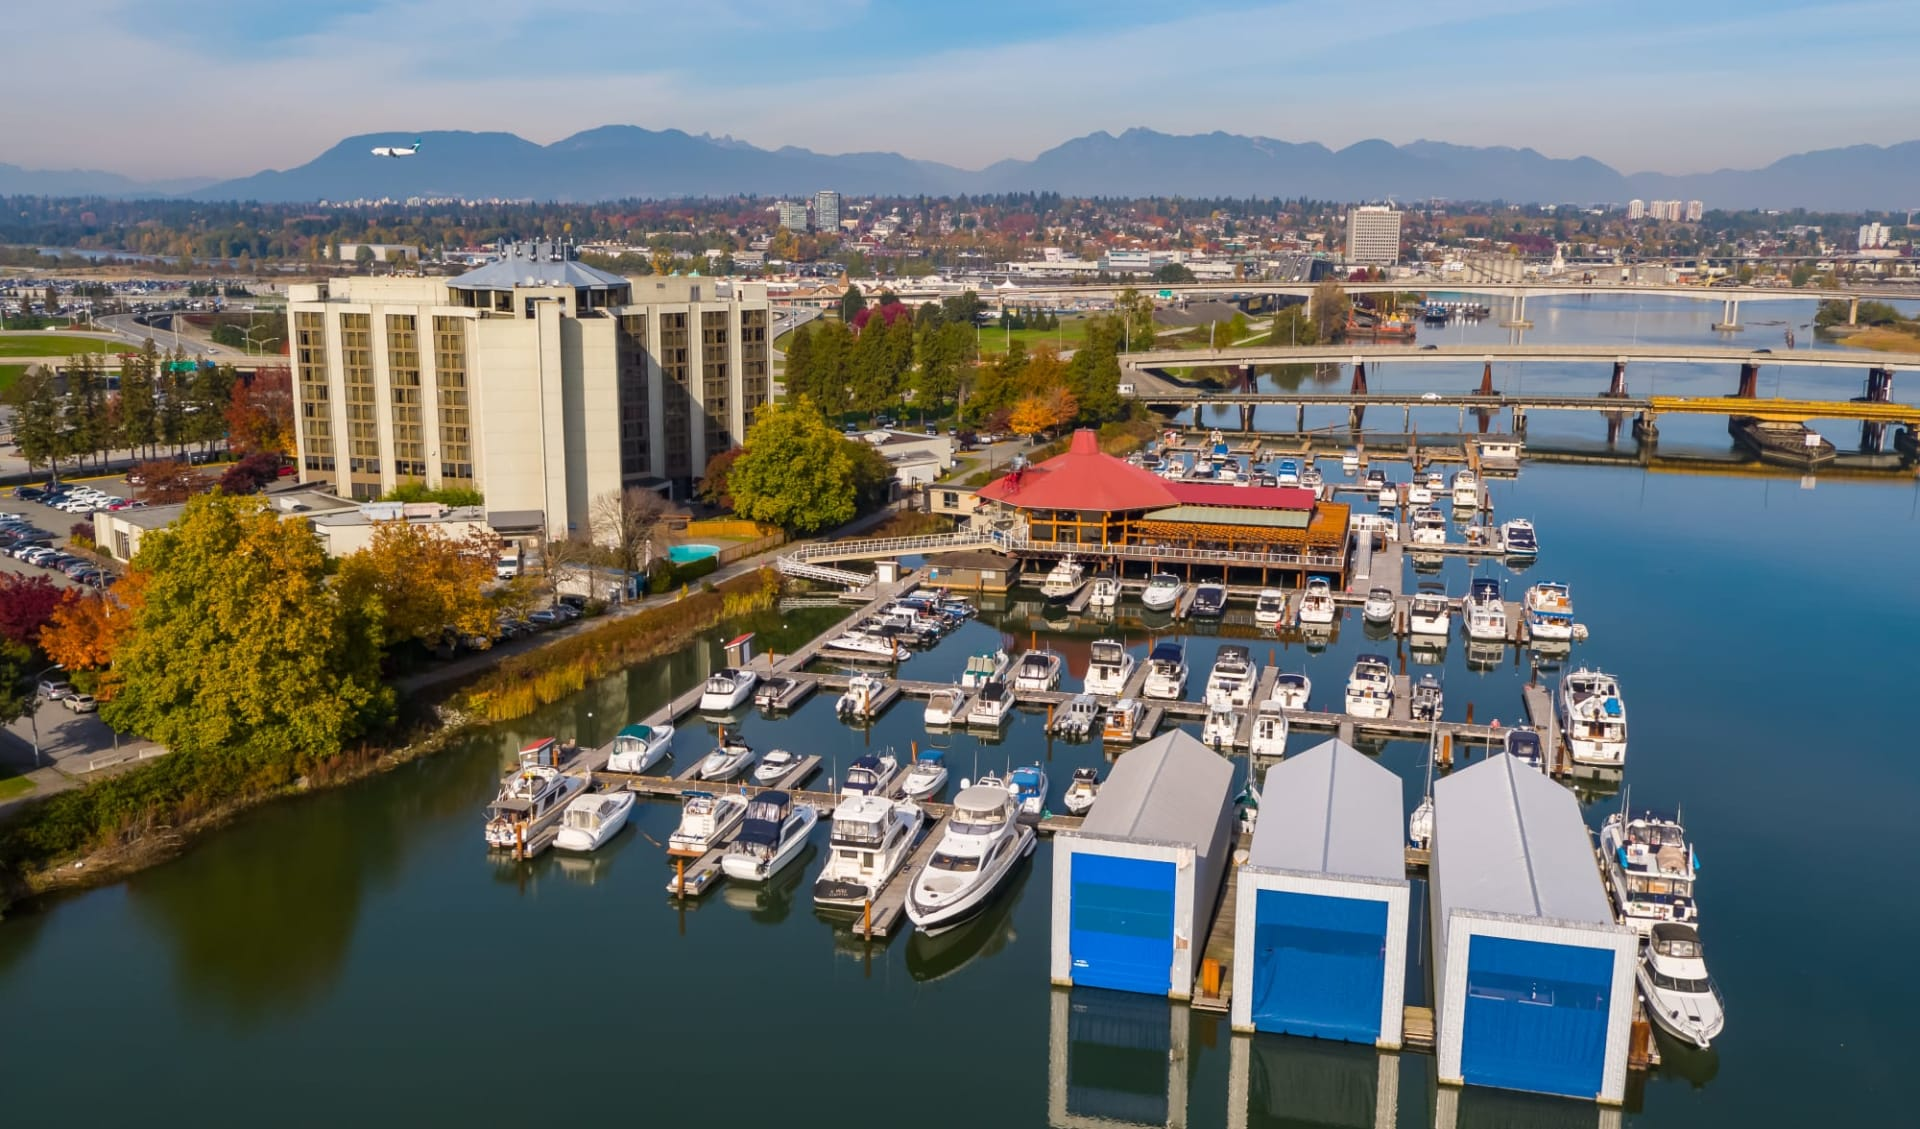 Pacific Gateway Hotel Vancouver Airport in Richmond:  Pacific Gateway Hotel